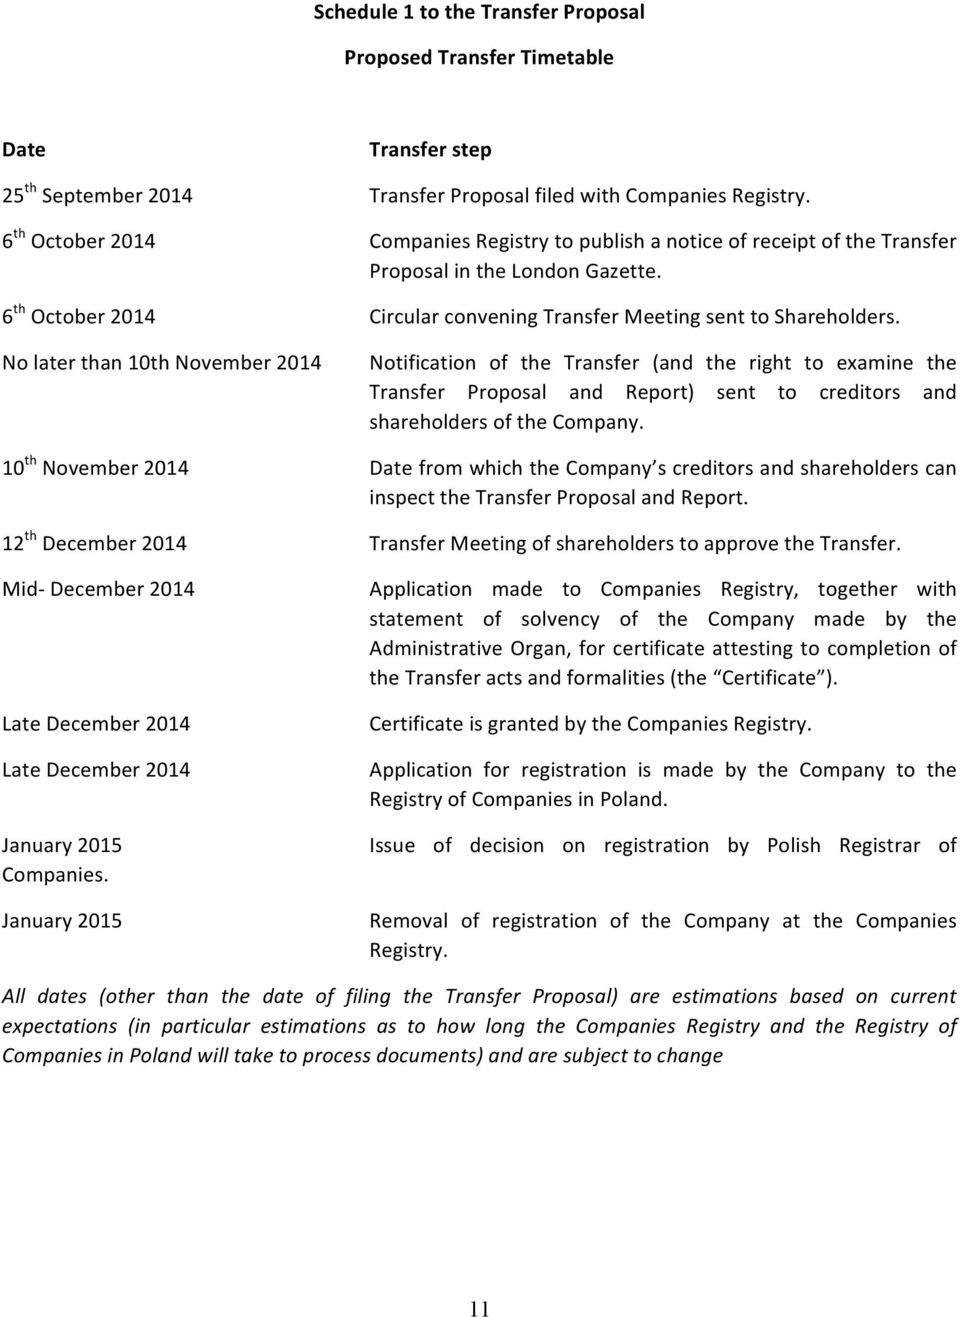 No later than 10th November 2014 Notification of the Transfer (and the right to examine the Transfer Proposal and Report) sent to creditors and shareholders of the Company.